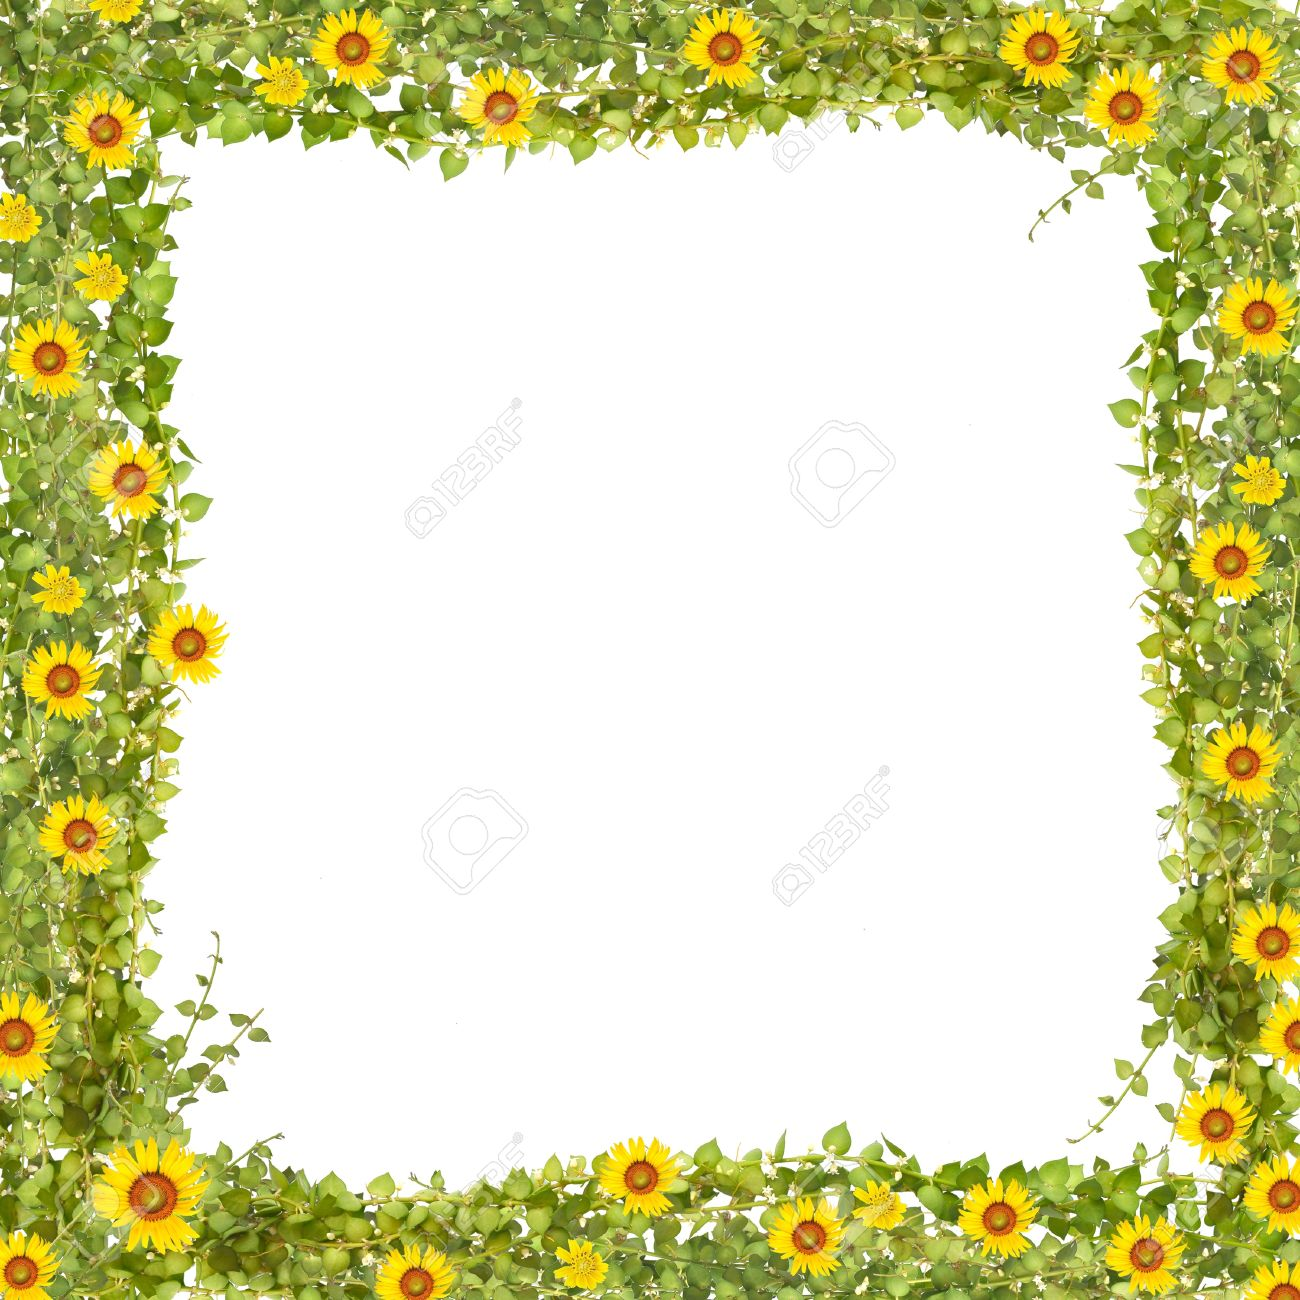 Million Heart Tree Frame With Sunflower Frame Stock Photo, Picture ...